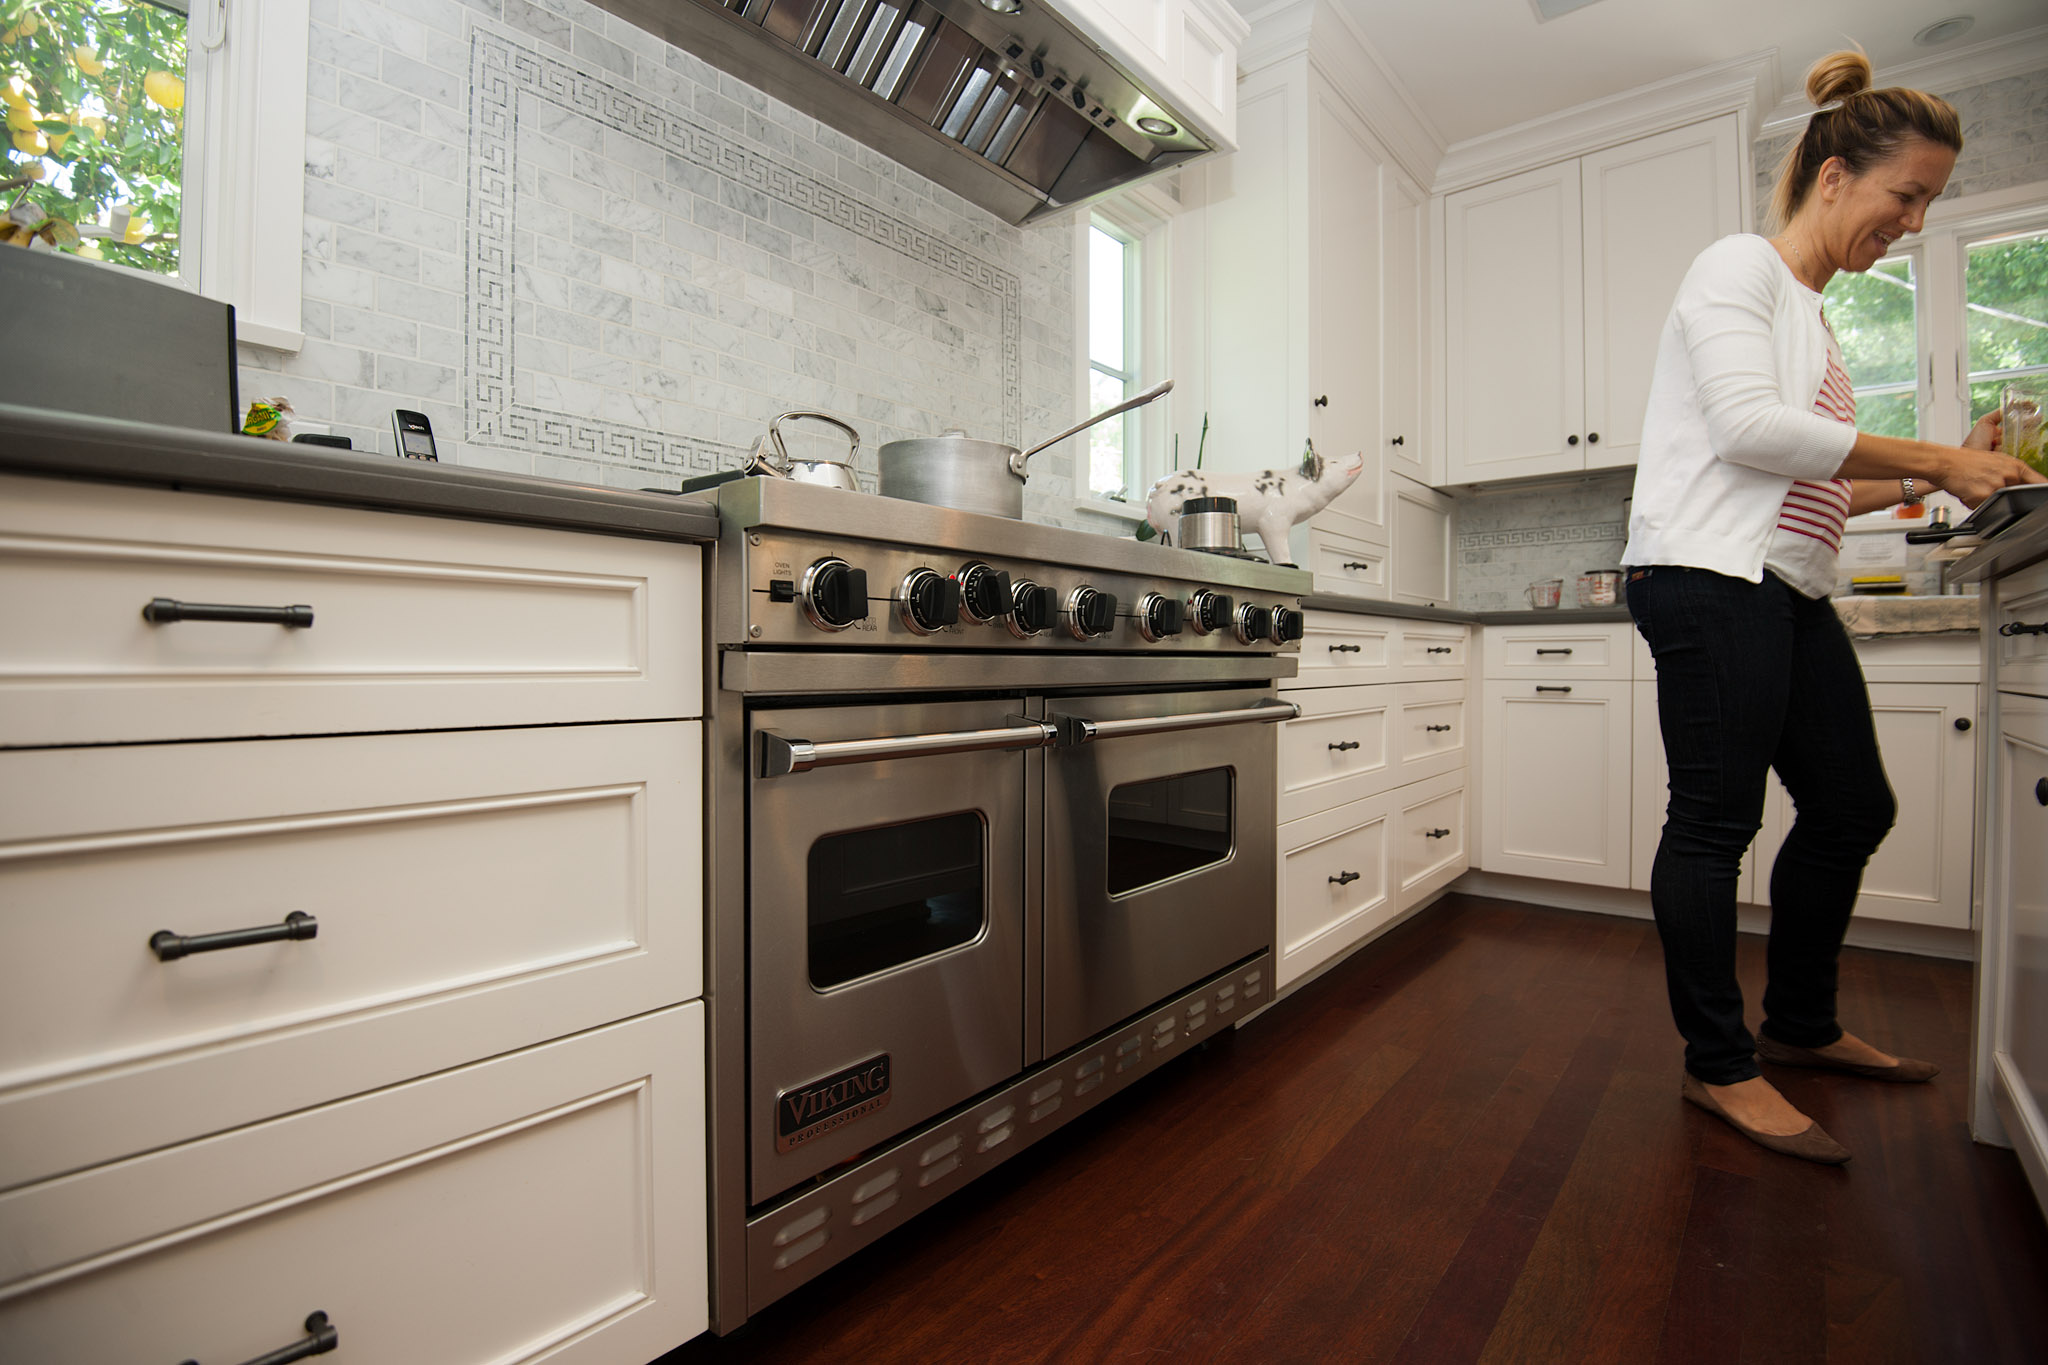 nexxus.kitchen.stove_